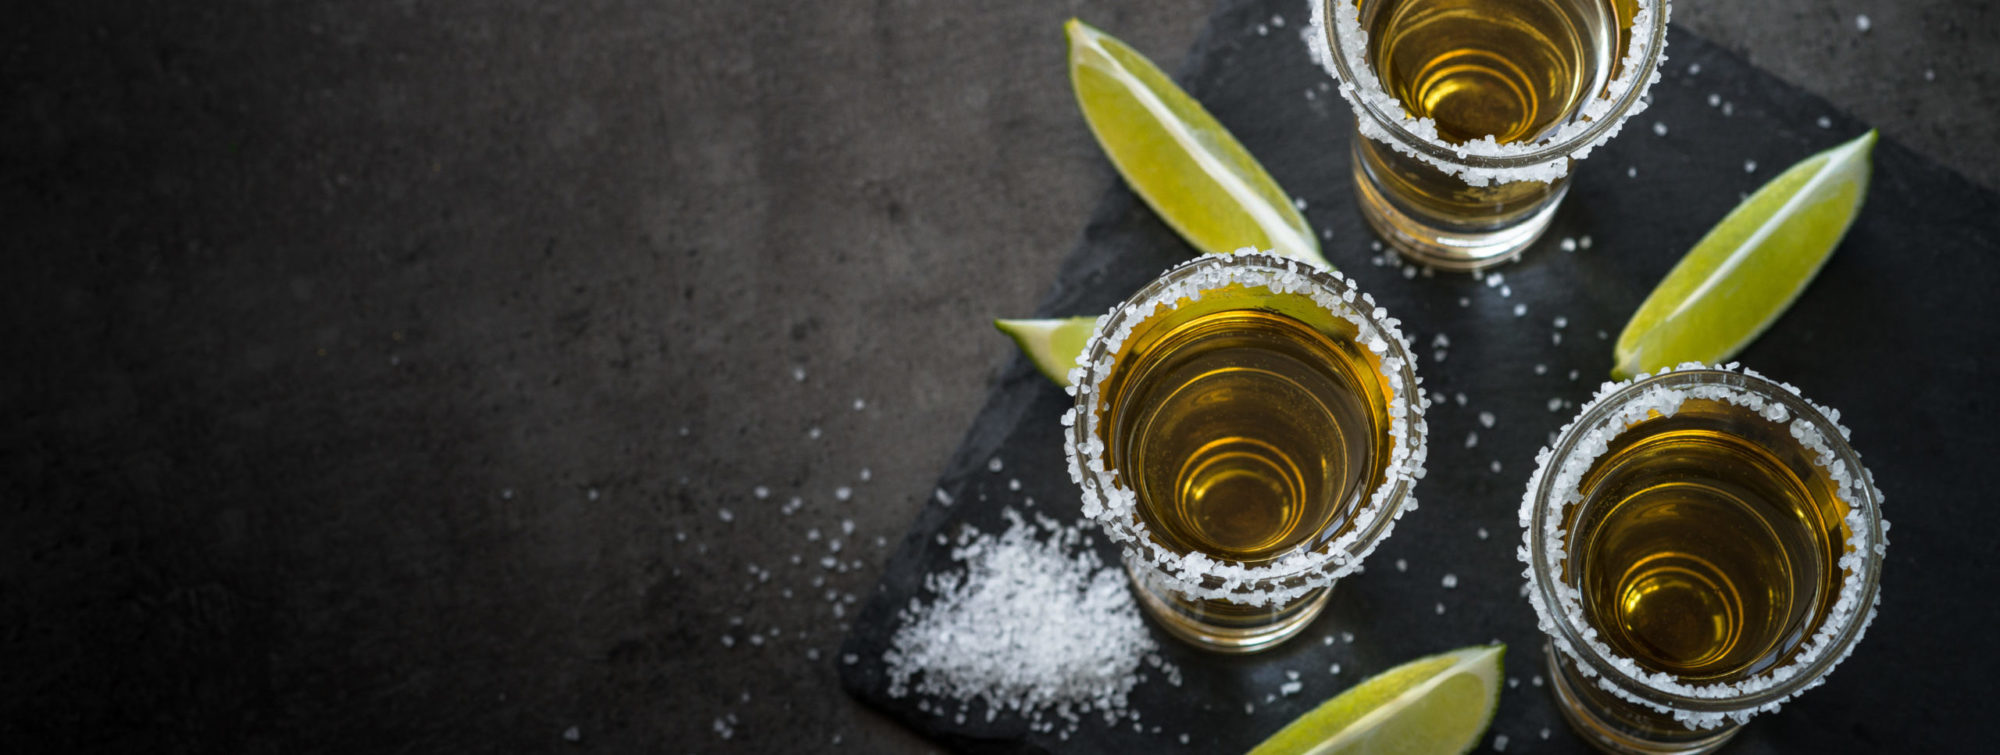 Two locals decided to take on creating a tequila brand in Utah, but things were a bit trickier than anticipated.